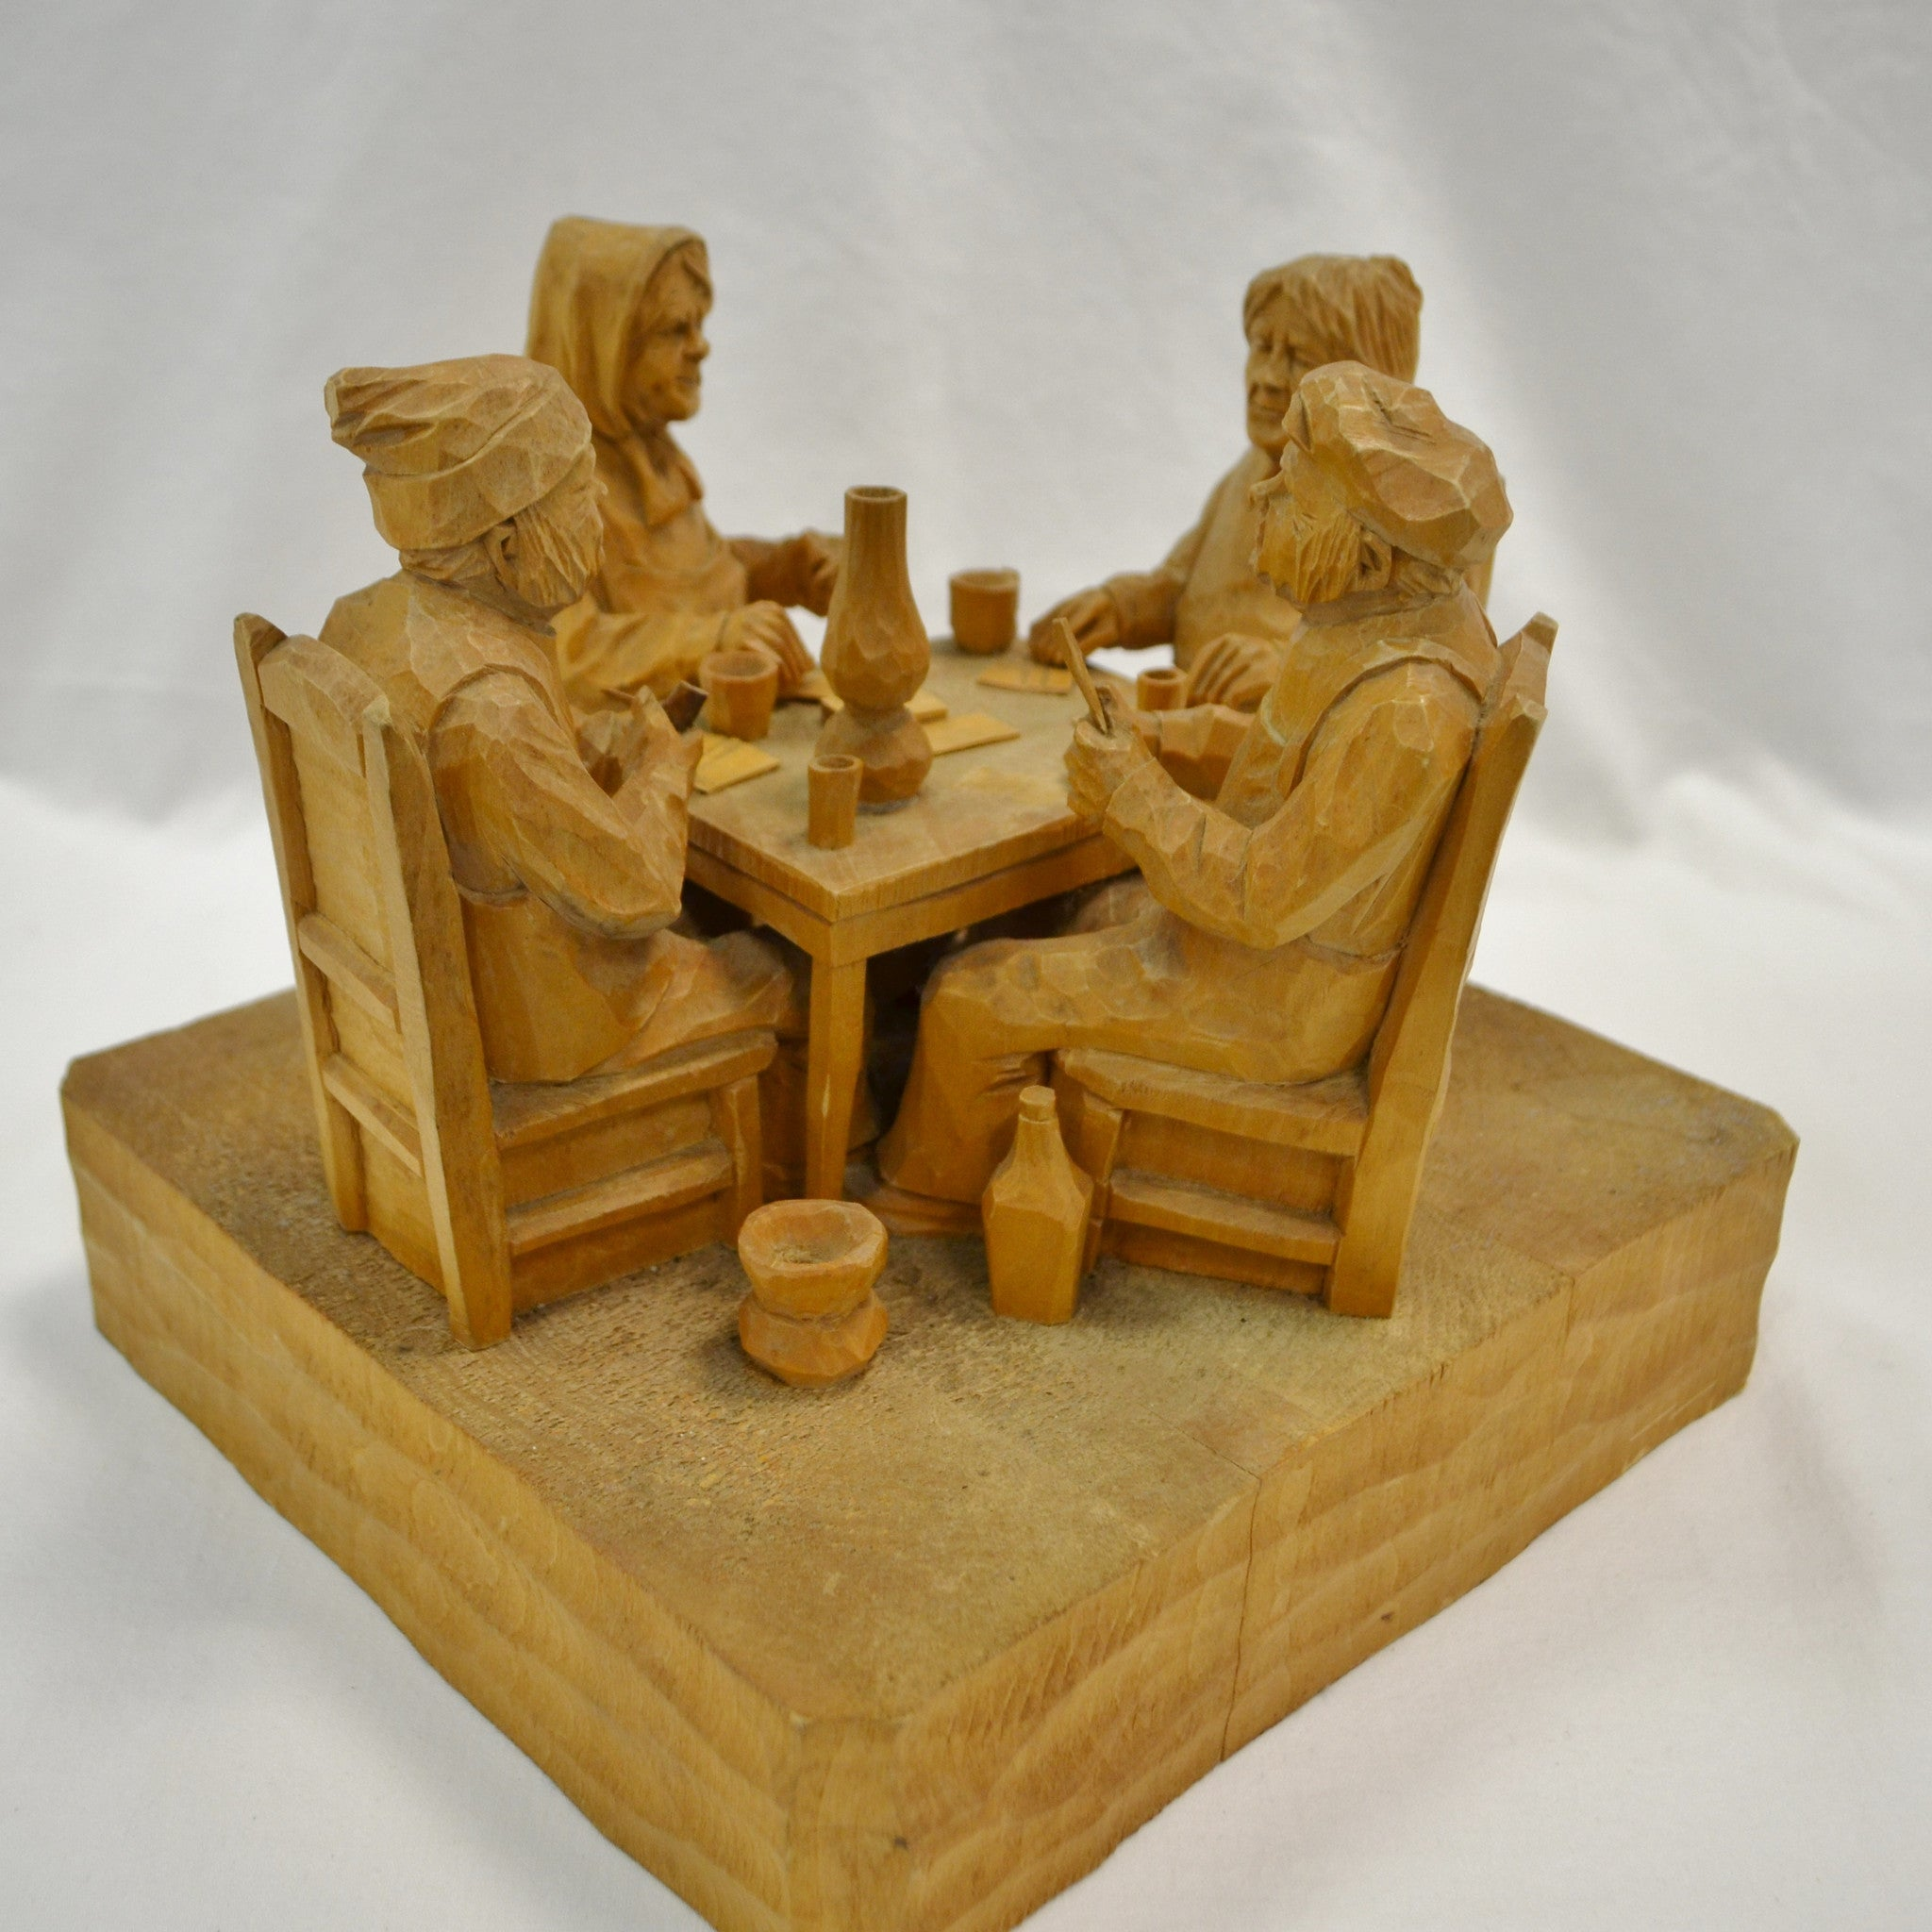 Four card players wood carving by Lucien Bourgault